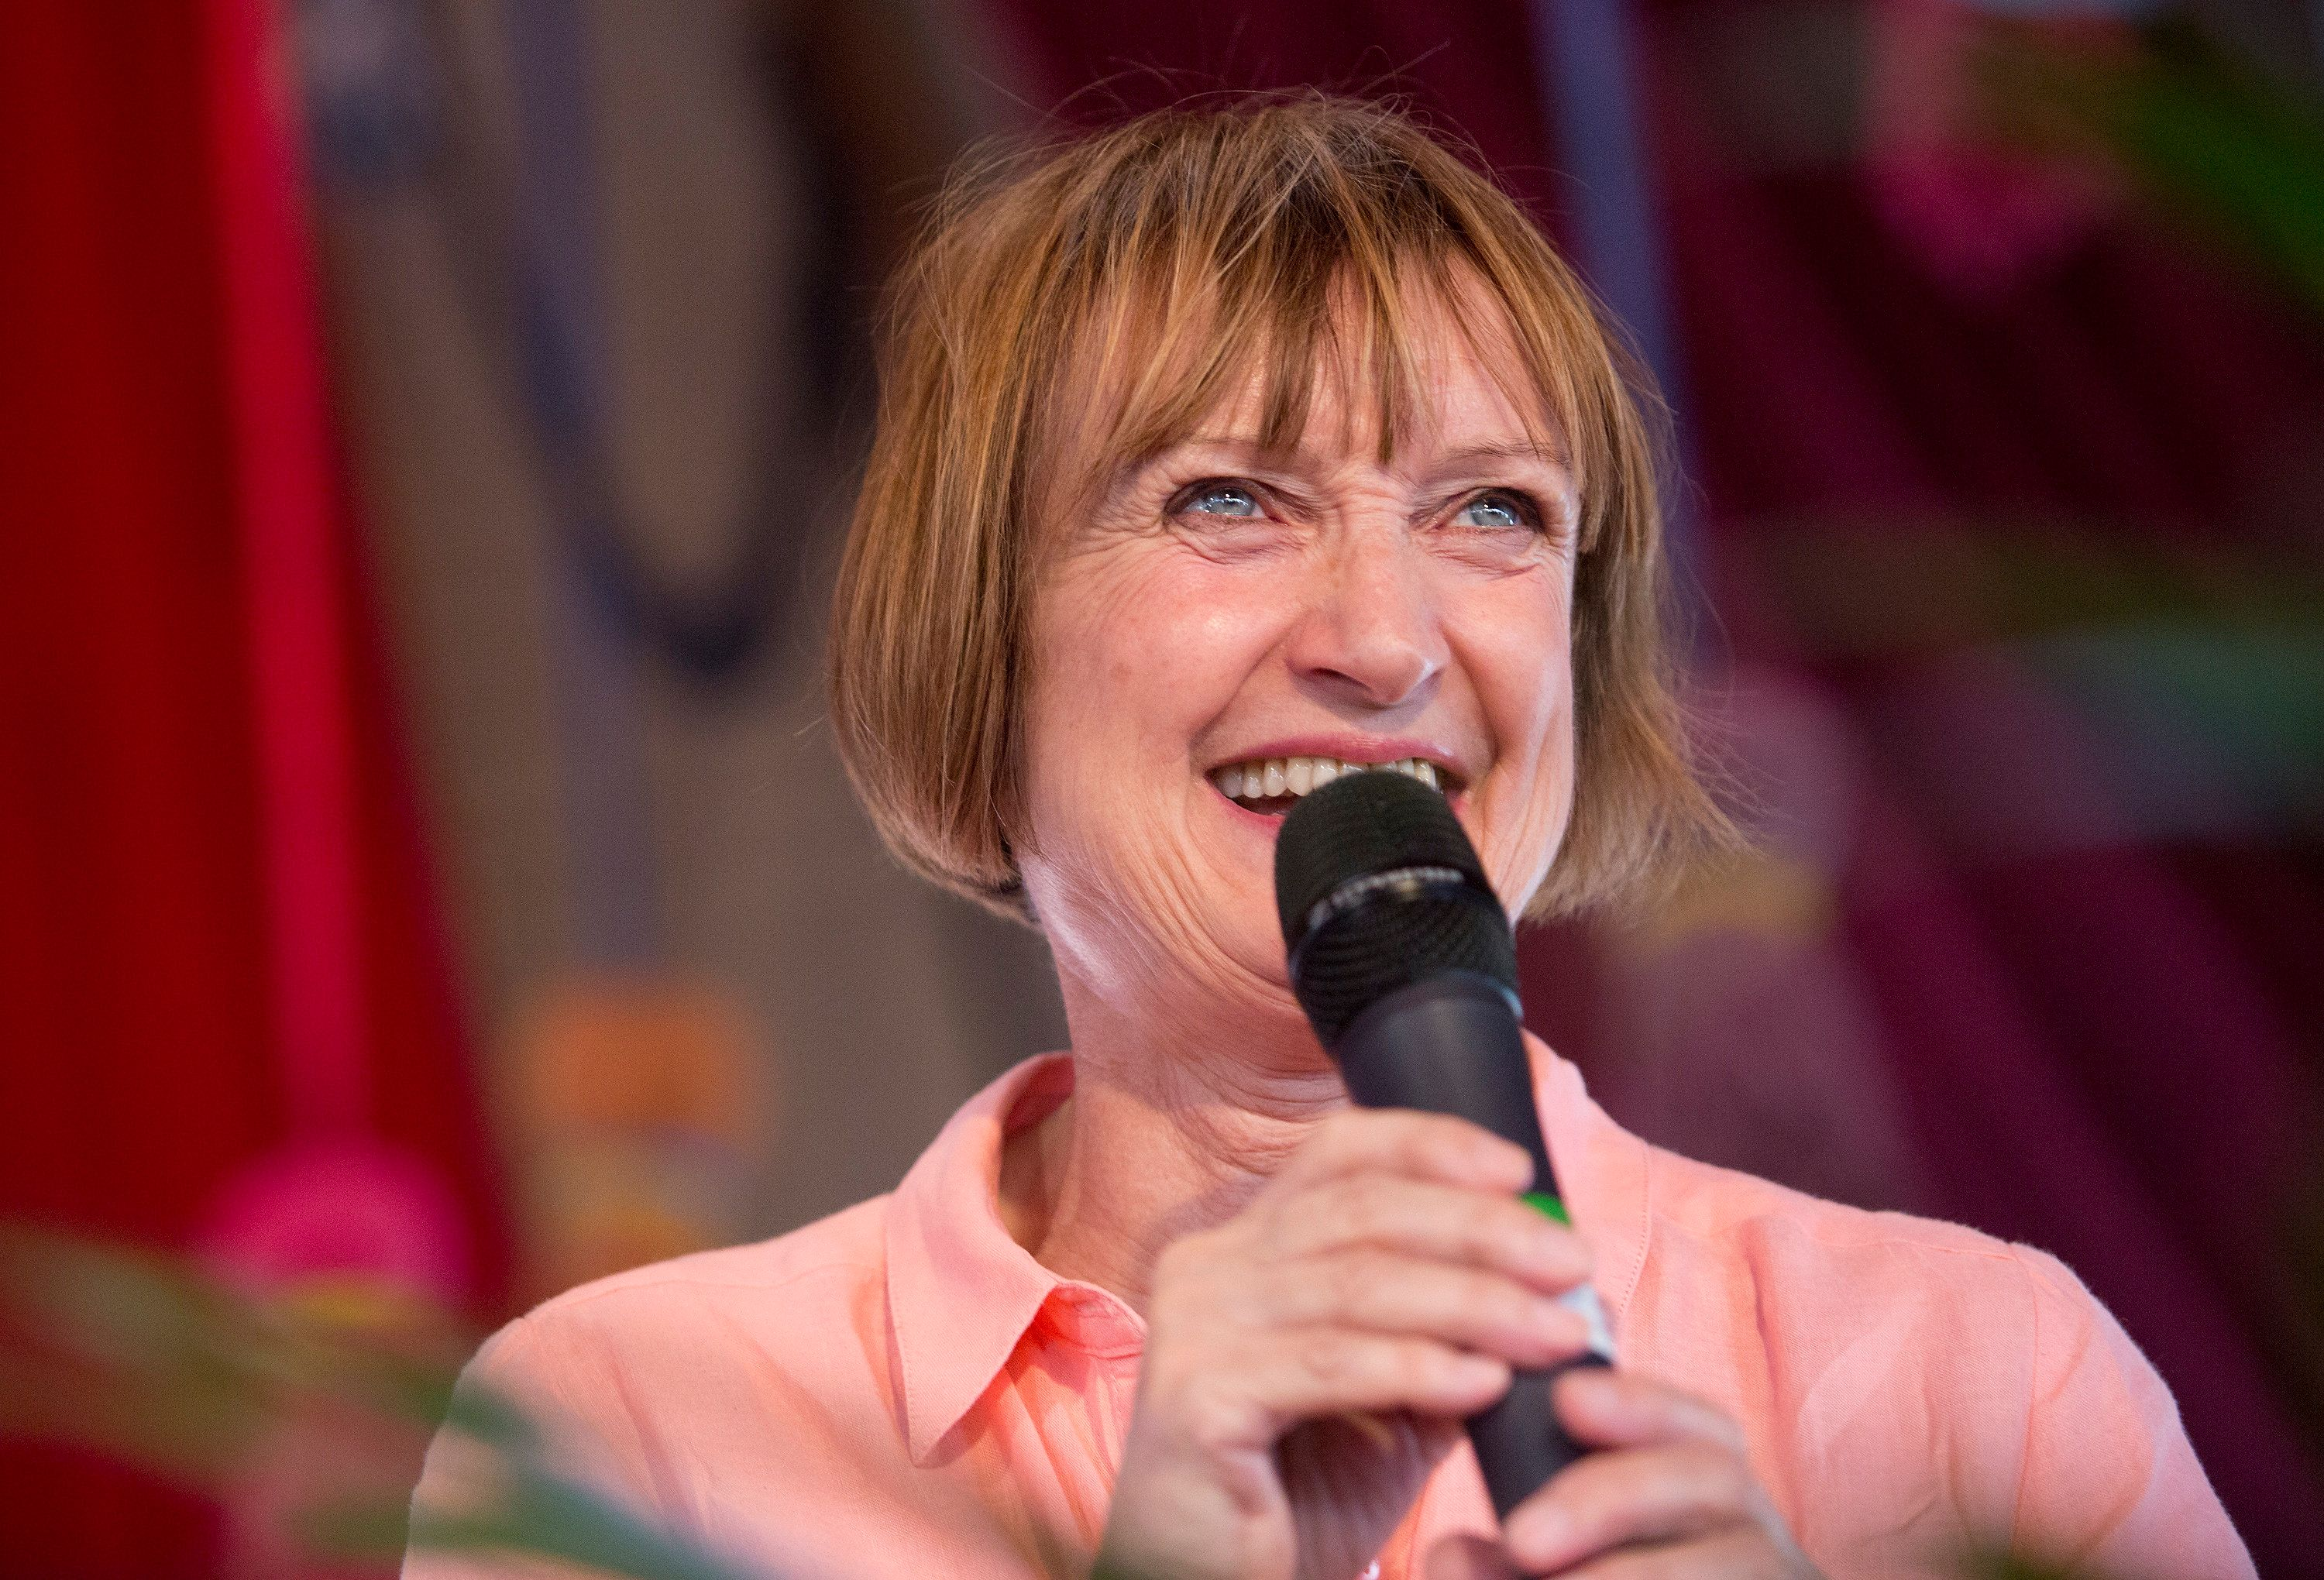 Portsmouth MP pays tribute to Tessa Jowell